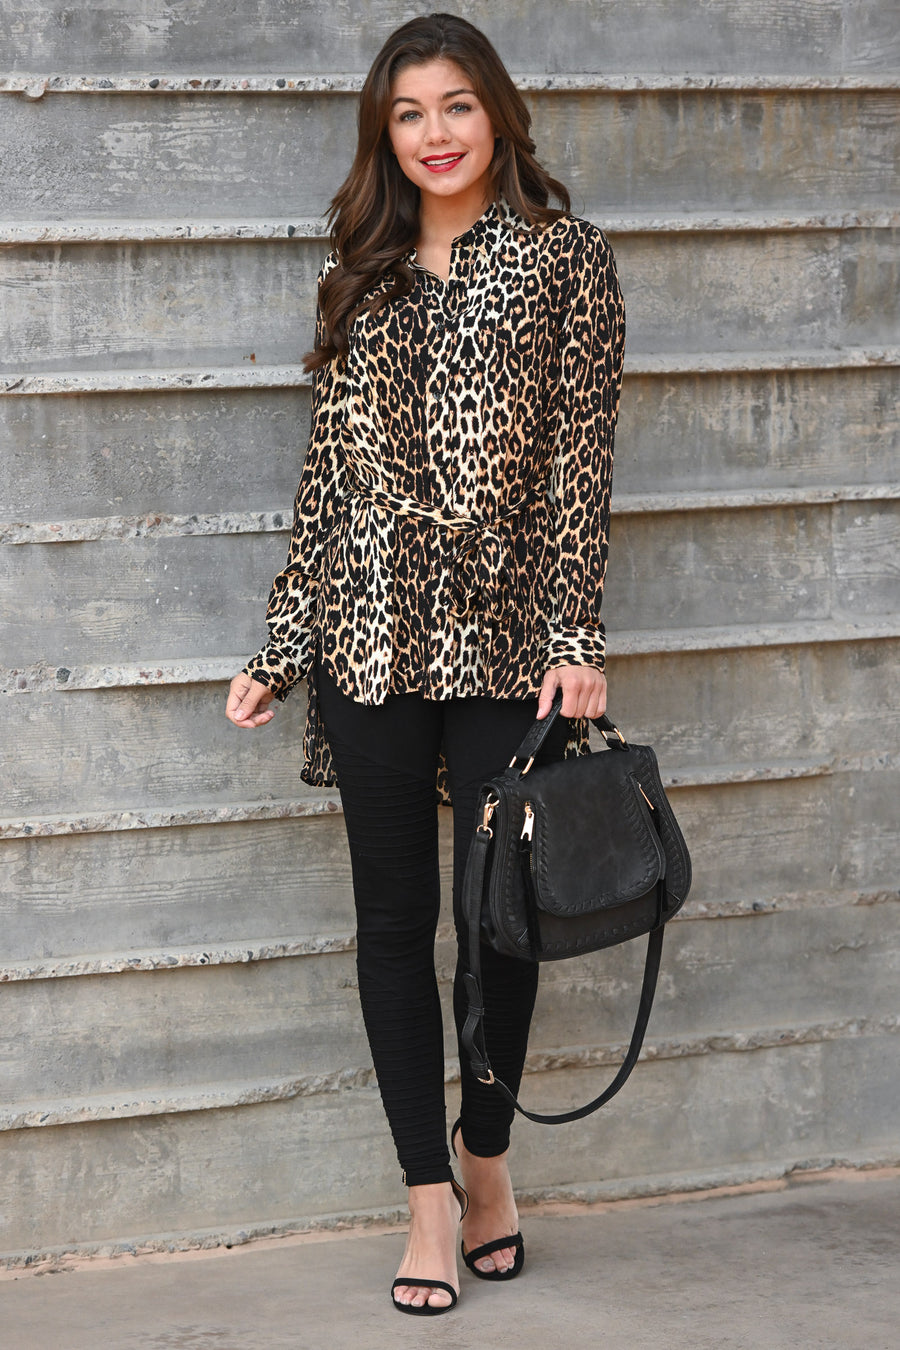 Can't Be Tamed Hi-Low Top - Leopard women's hi-low button-up top with waist tie, Closet Candy Boutique 1